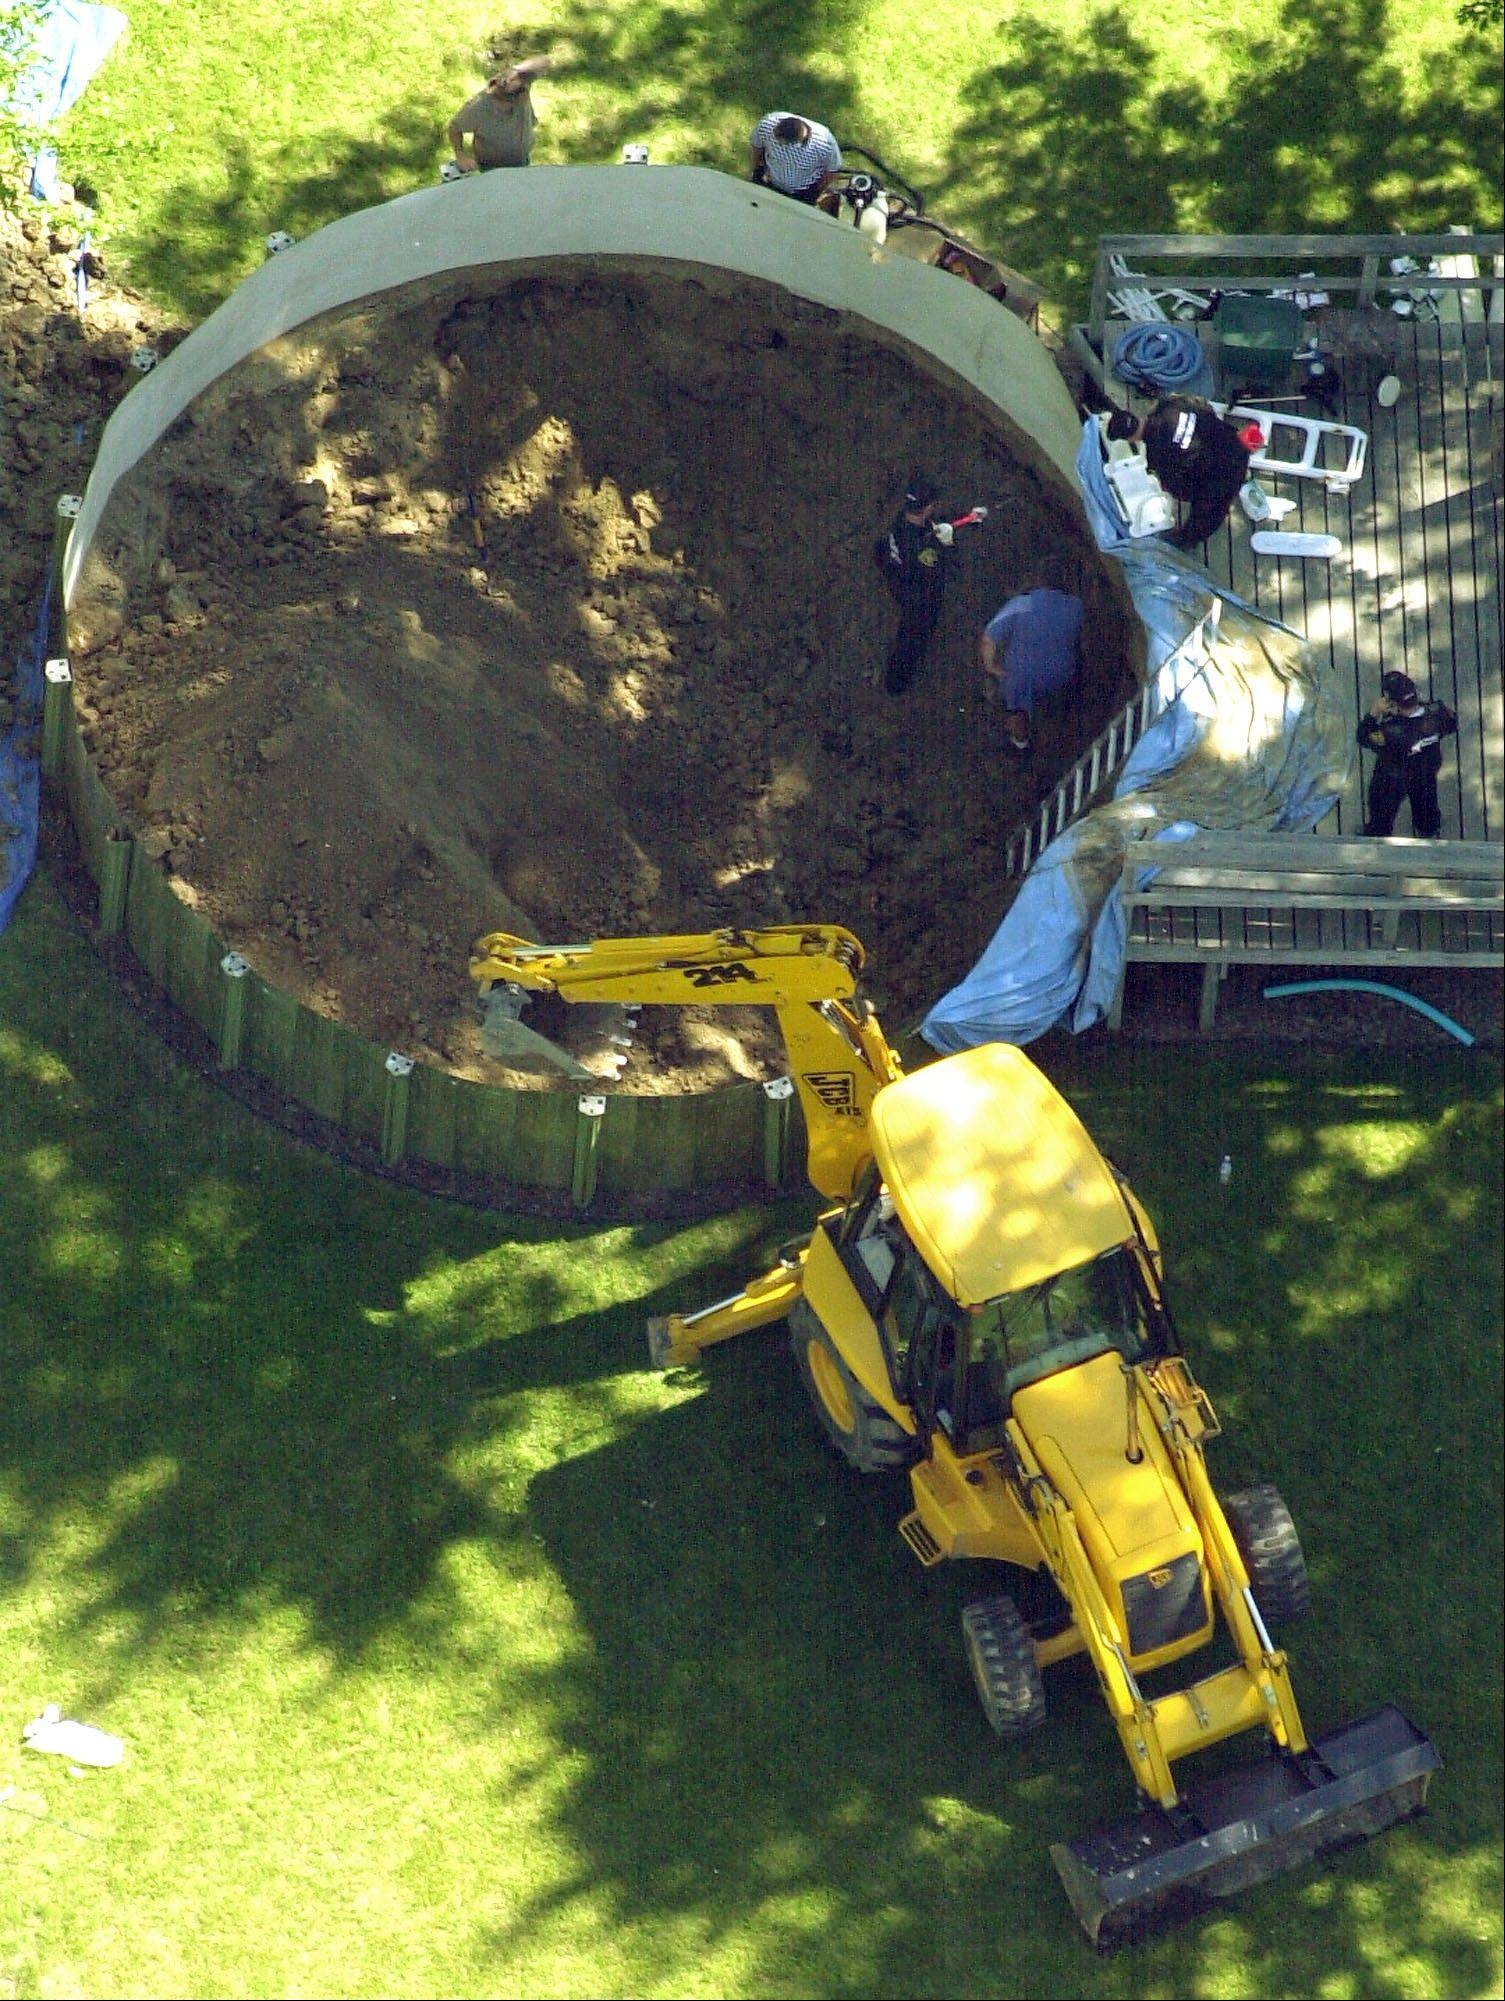 July 16, 2003: Authorities search under a backyard pool in Hampton Township, Mich., for evidence linked to the disappearance of ex-teamster boss Jimmy Hoffa.